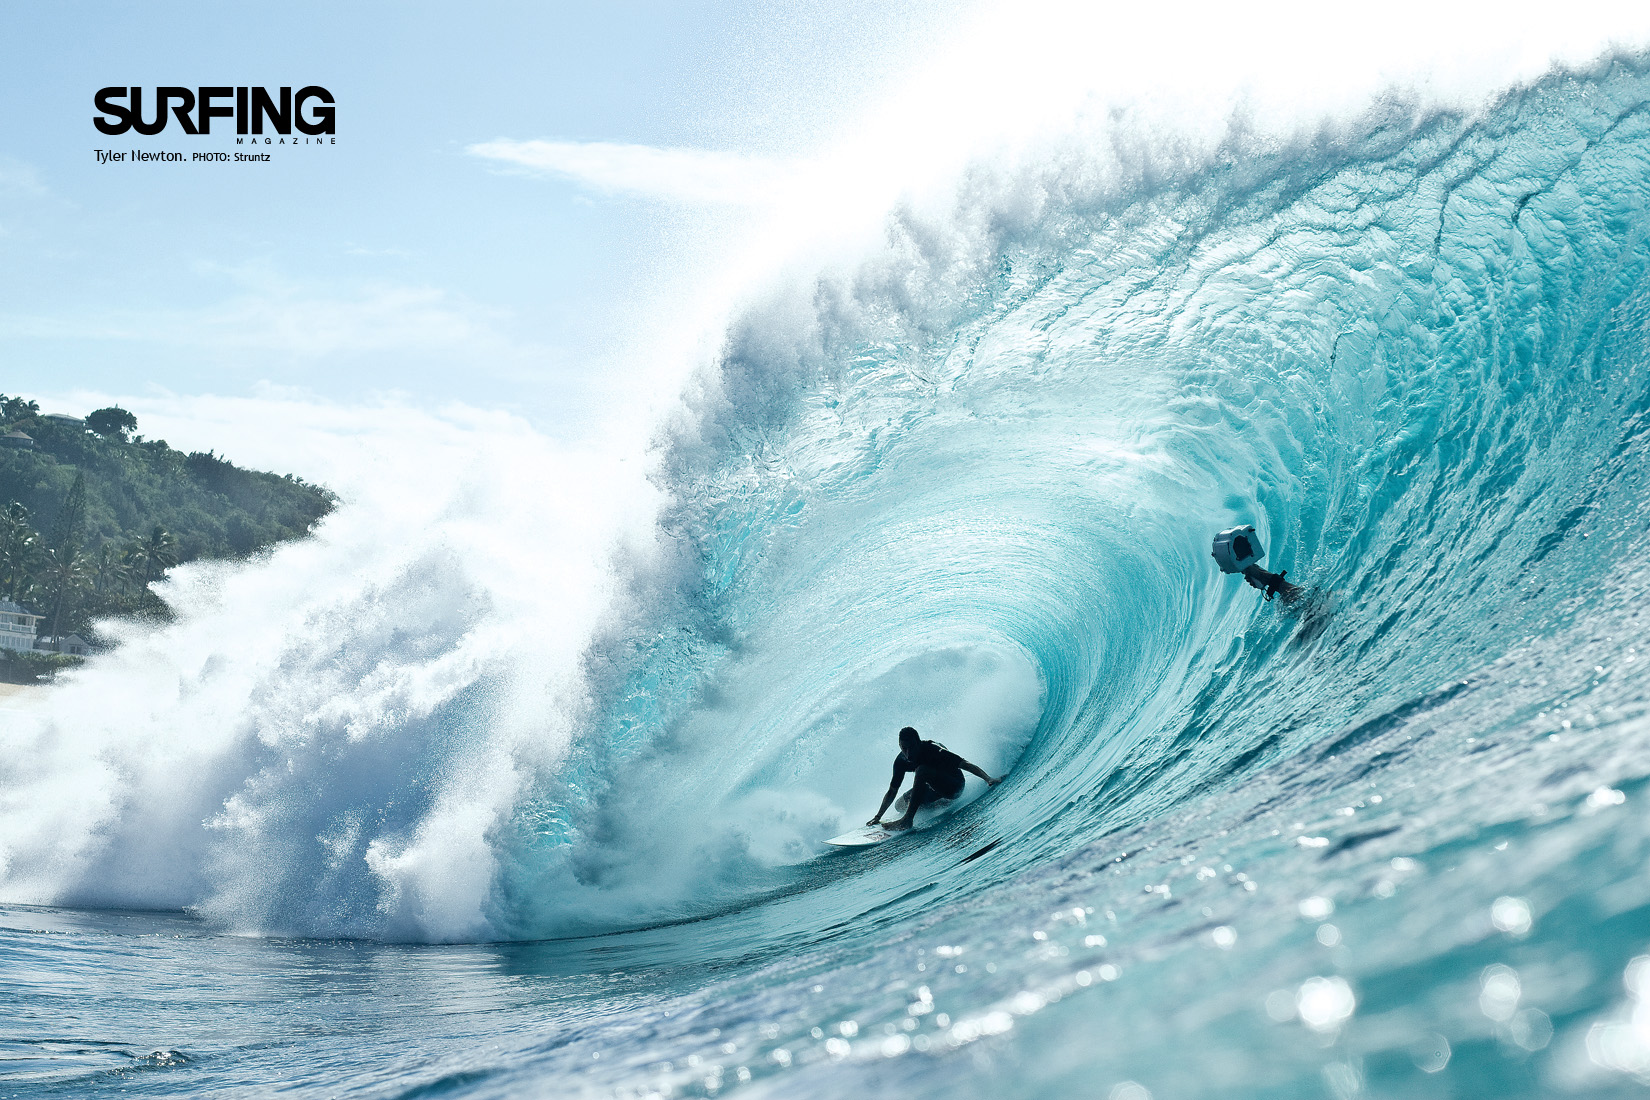 hd surfing wallpaper - wallpapersafari